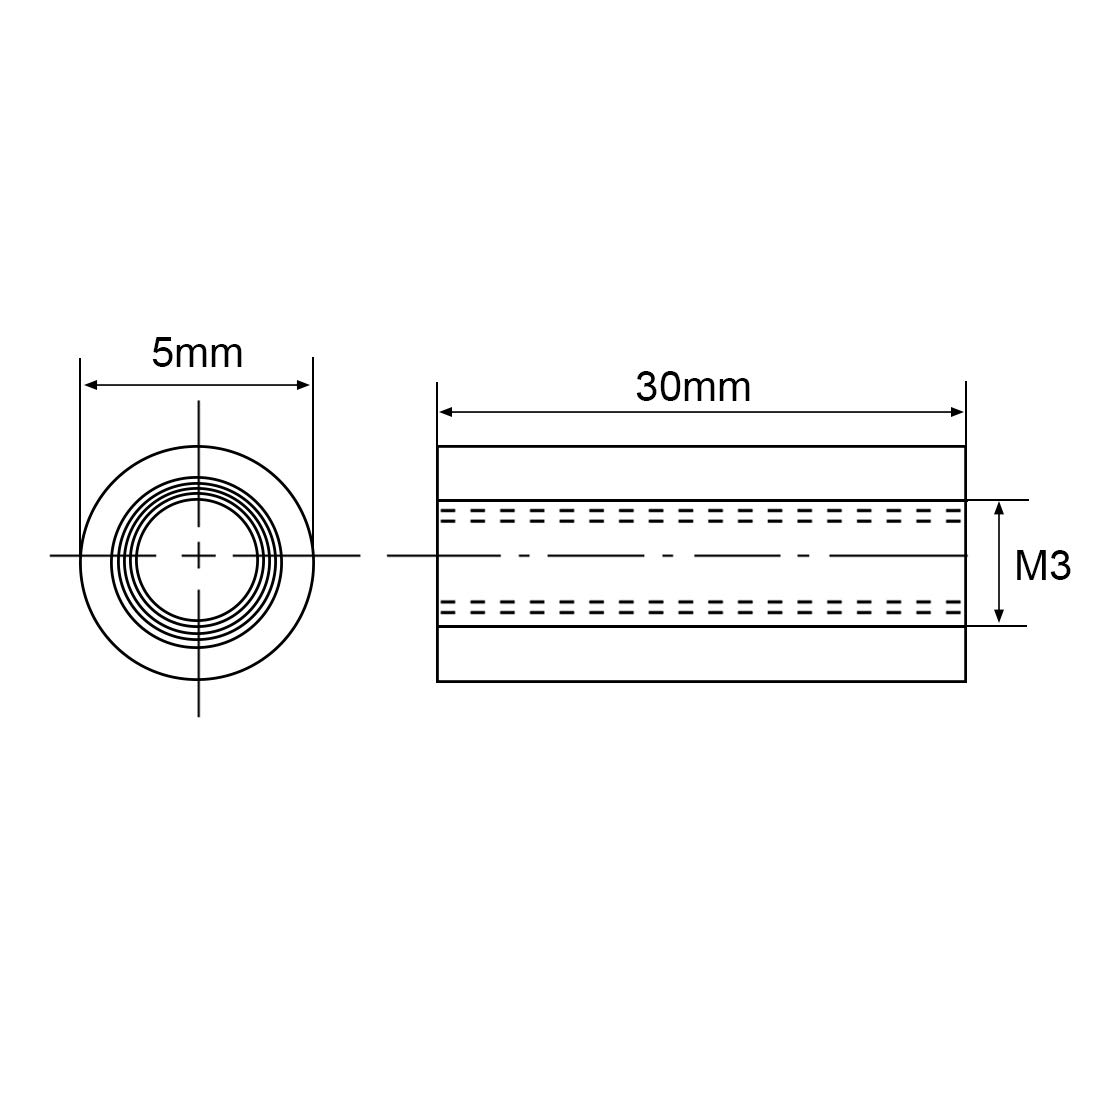 uxcell Round Aluminum Standoff Column Spacer M3x60mm,for FPV Quadcopter,CNC,Red,10pcs